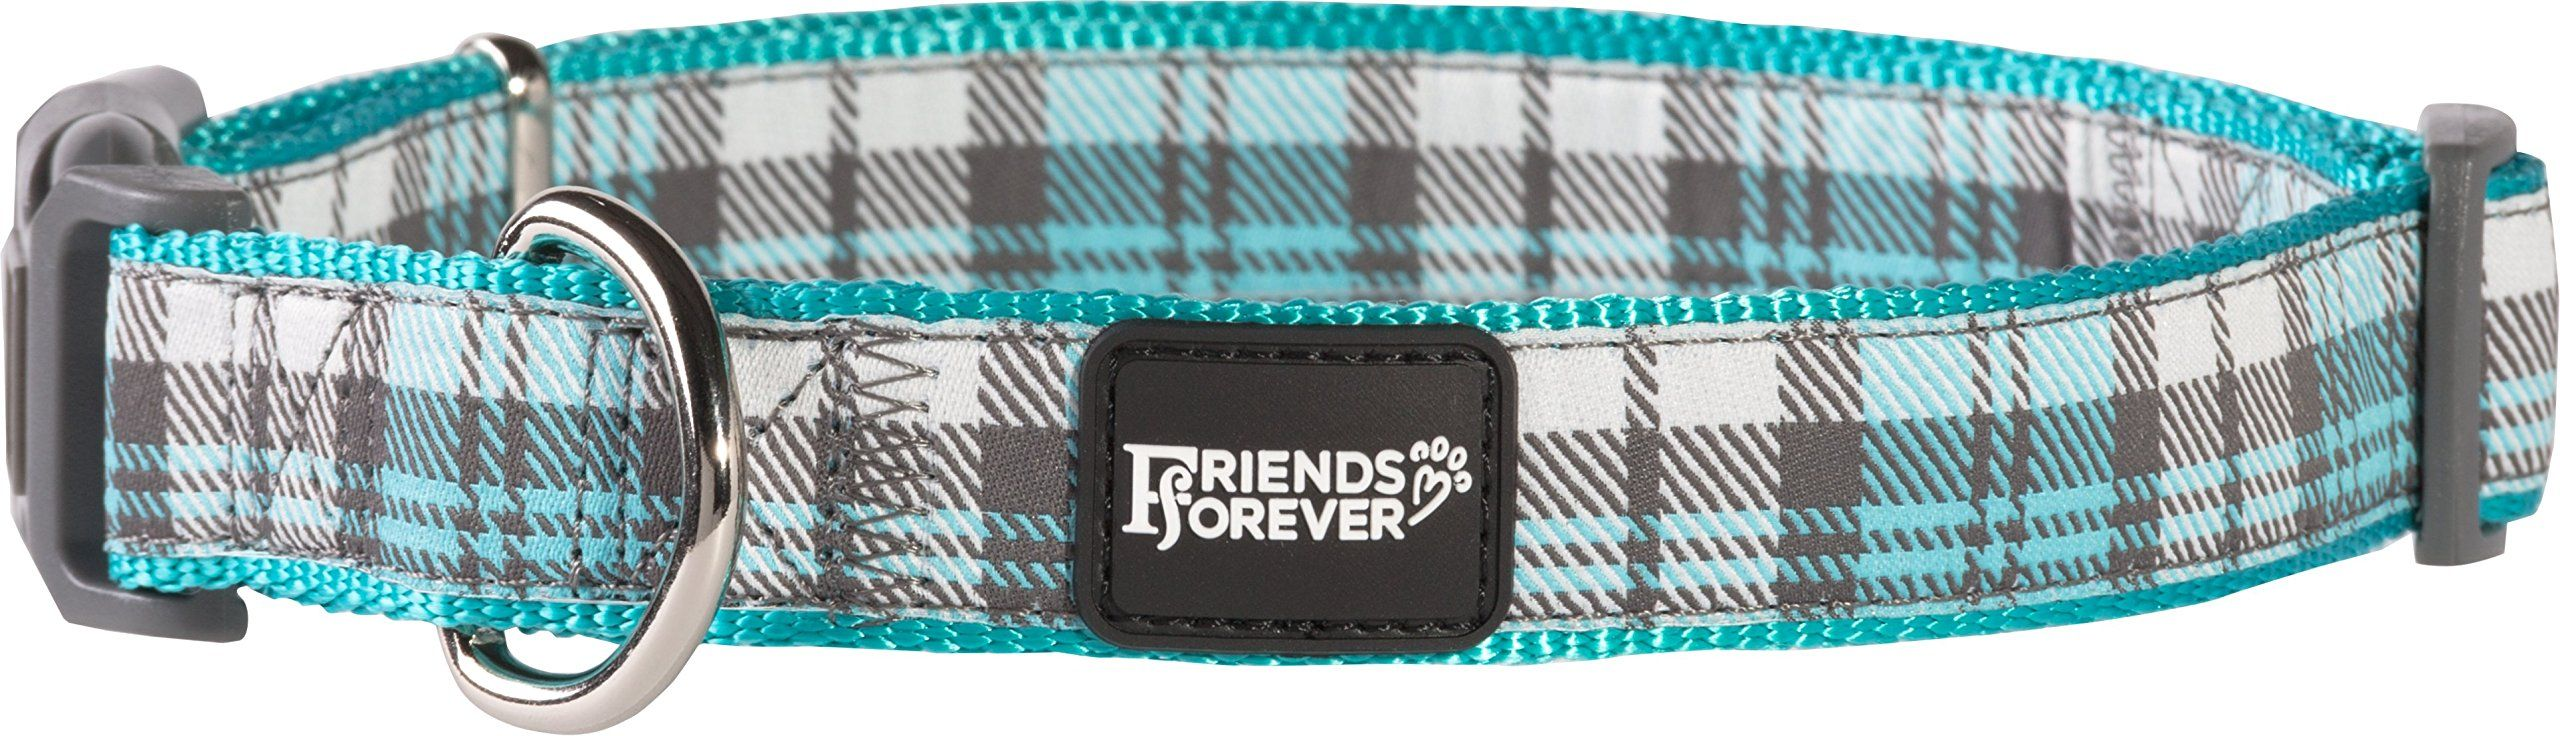 Friends forever plaid dog collar for dogs fashion woven